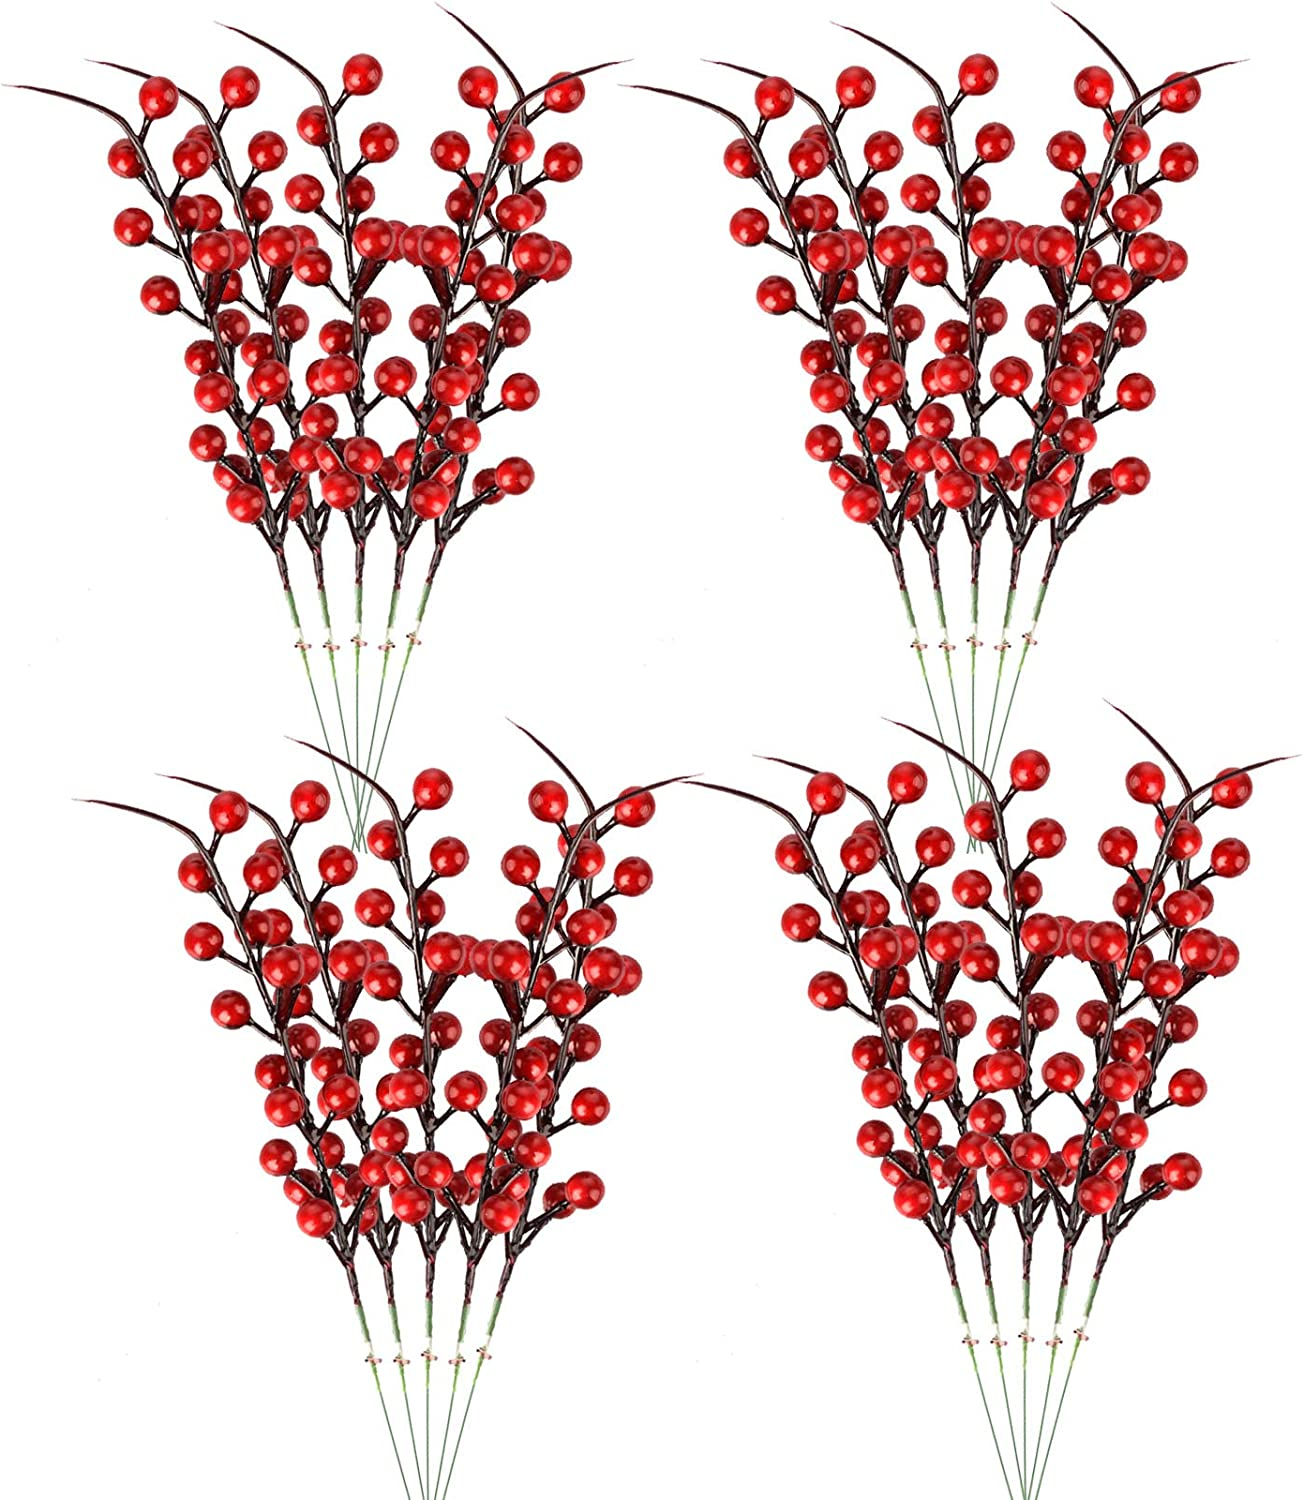 Artificial Red Berry 20pcs Holly Christmas Berries Stem Faux Berry Spray Branches Red Berry Sprigs Twigs Artificial Fruit Plant For Christmas Tree Crafts Holiday Wedding And Home Decor 10 24 In Amazon Ca Home Kitchen